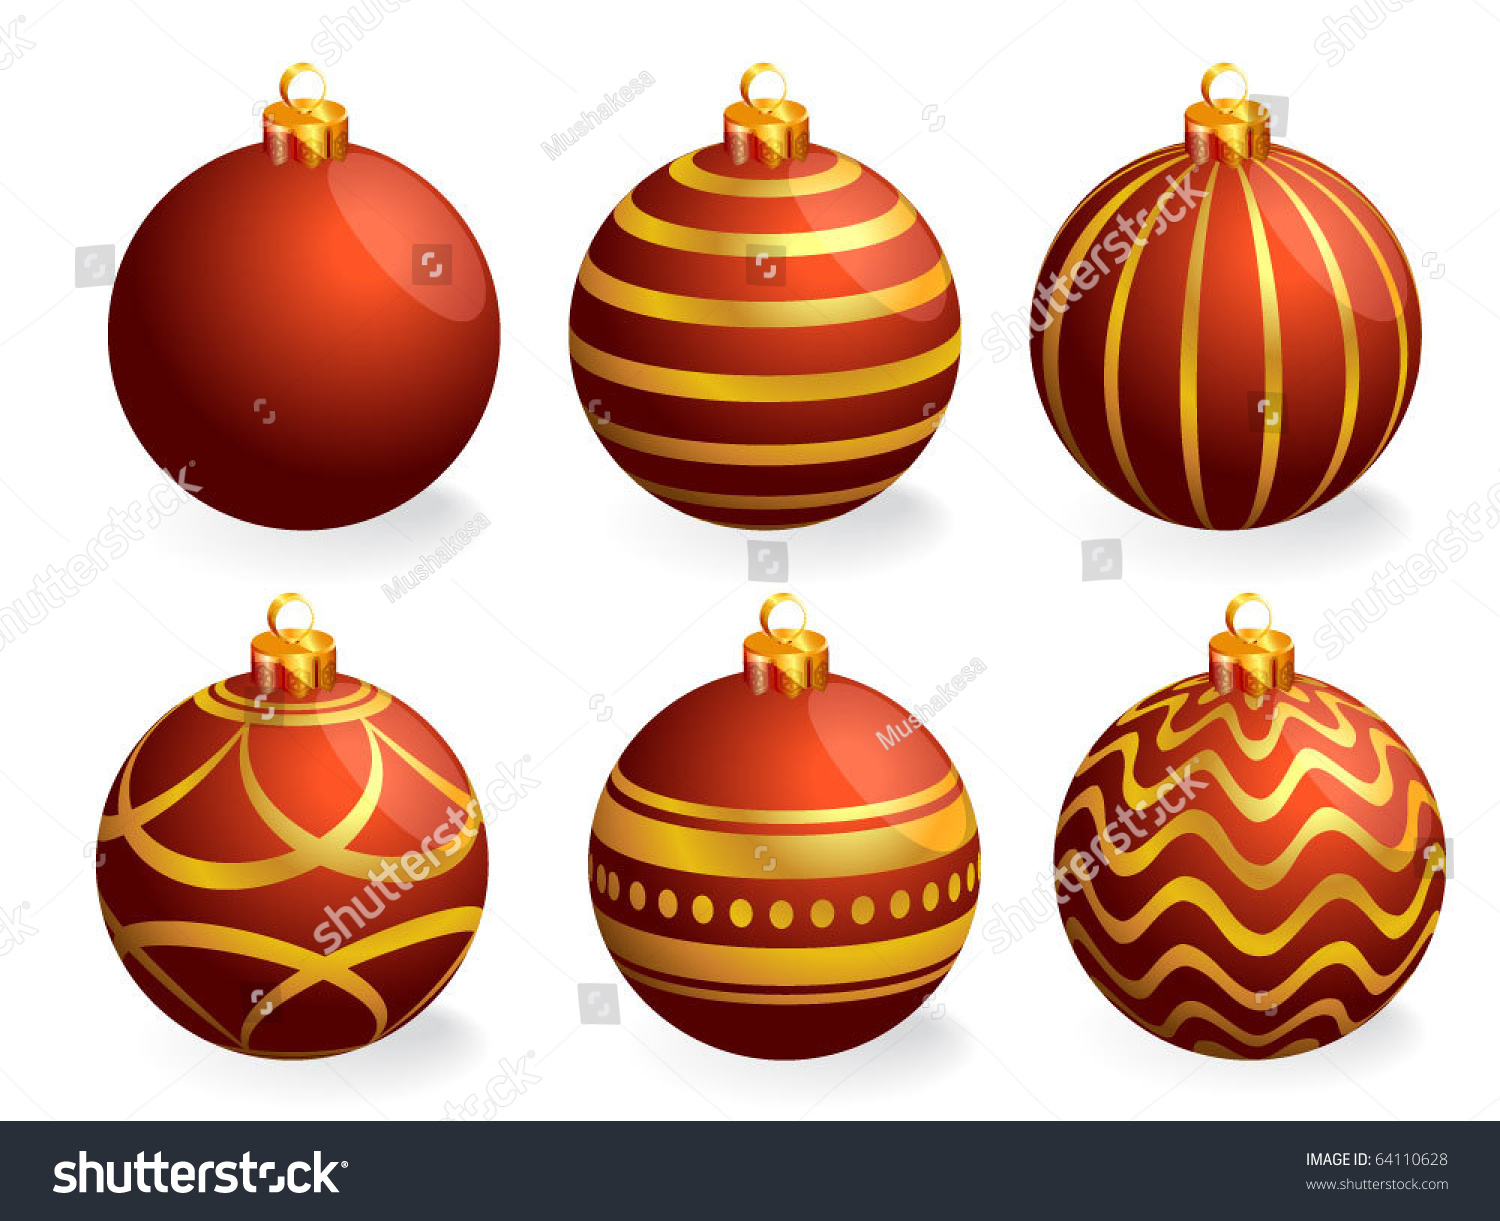 Red and gold christmas ornaments - Red And Gold Christmas Ornaments 39